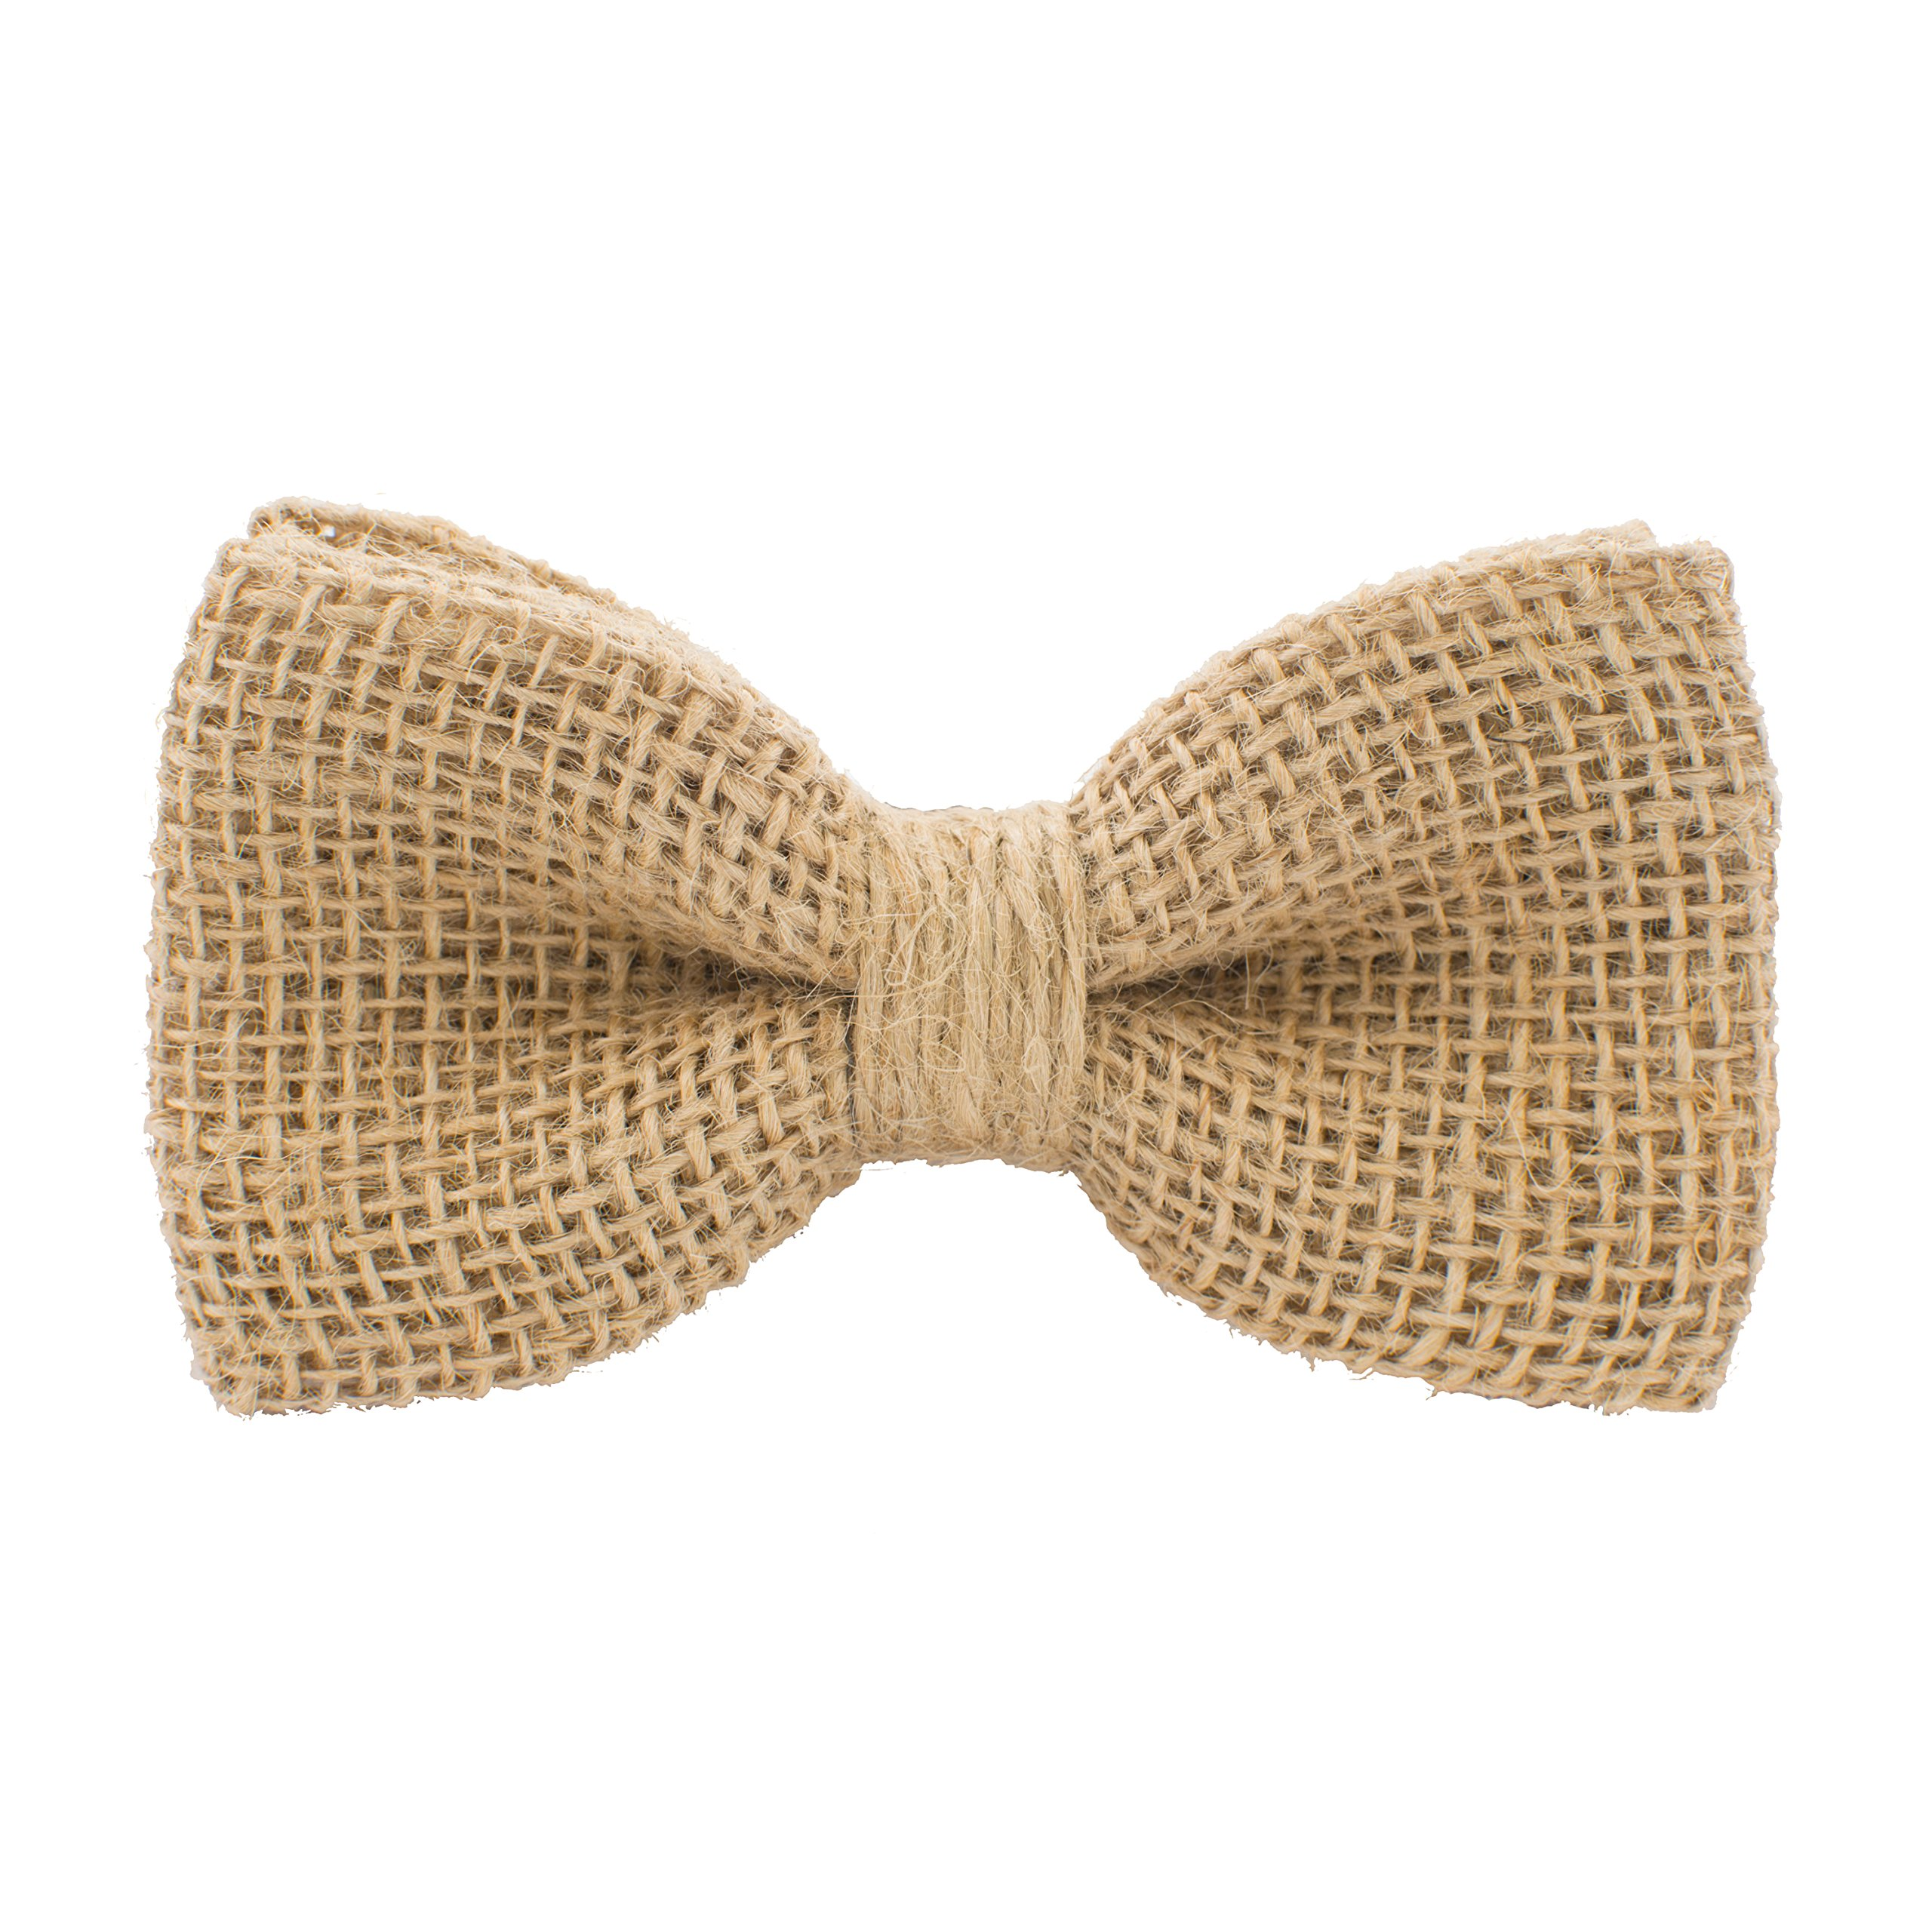 Bow Tie House Rustic Pre-Tied Bow Tie in 100% Burlap Hessian (Beige, Small)